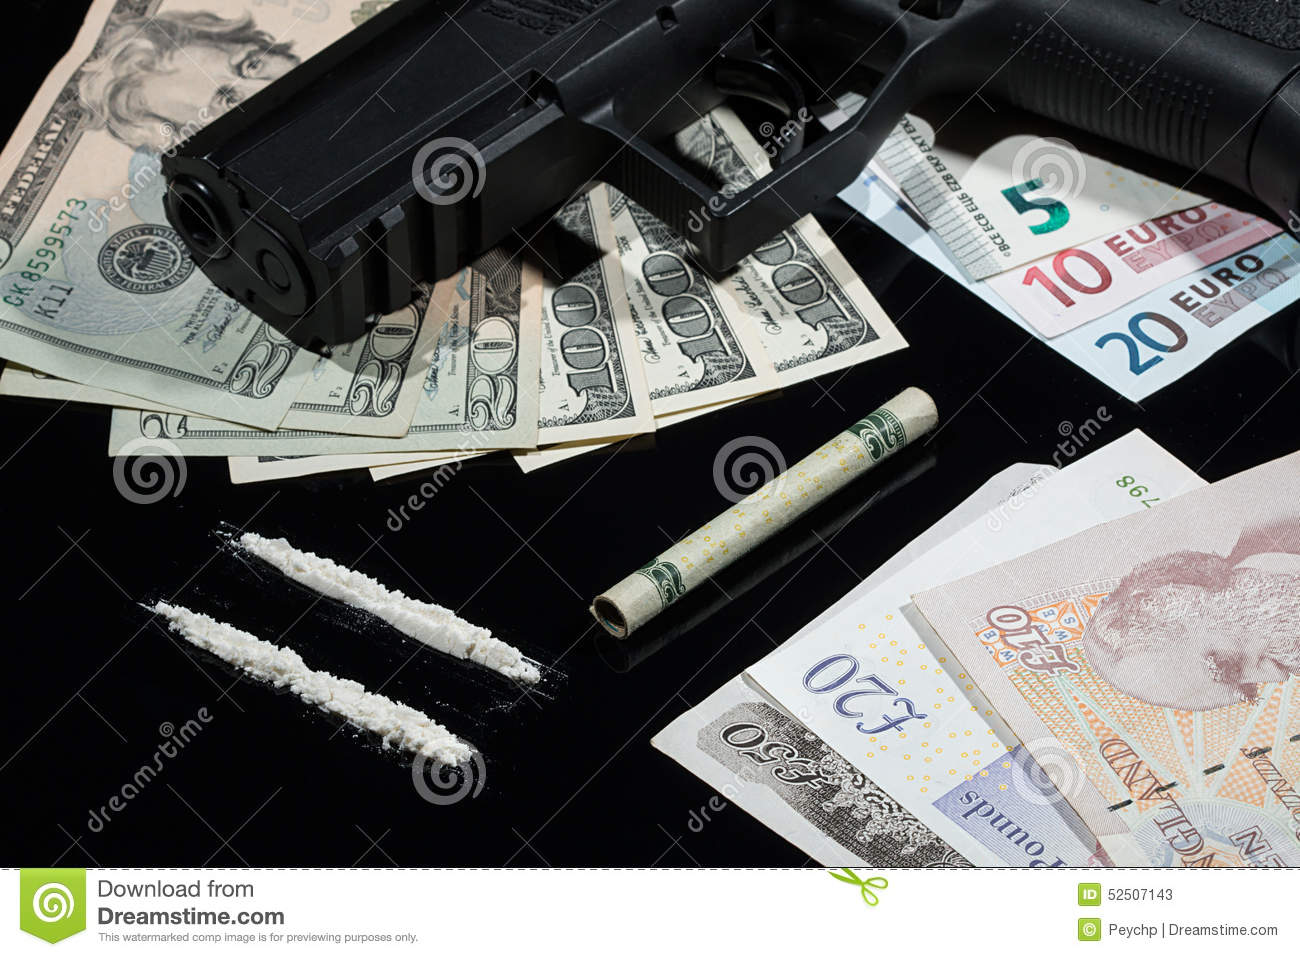 Illegal Drugs , Money And Guns Stock Image - Image: 52507143